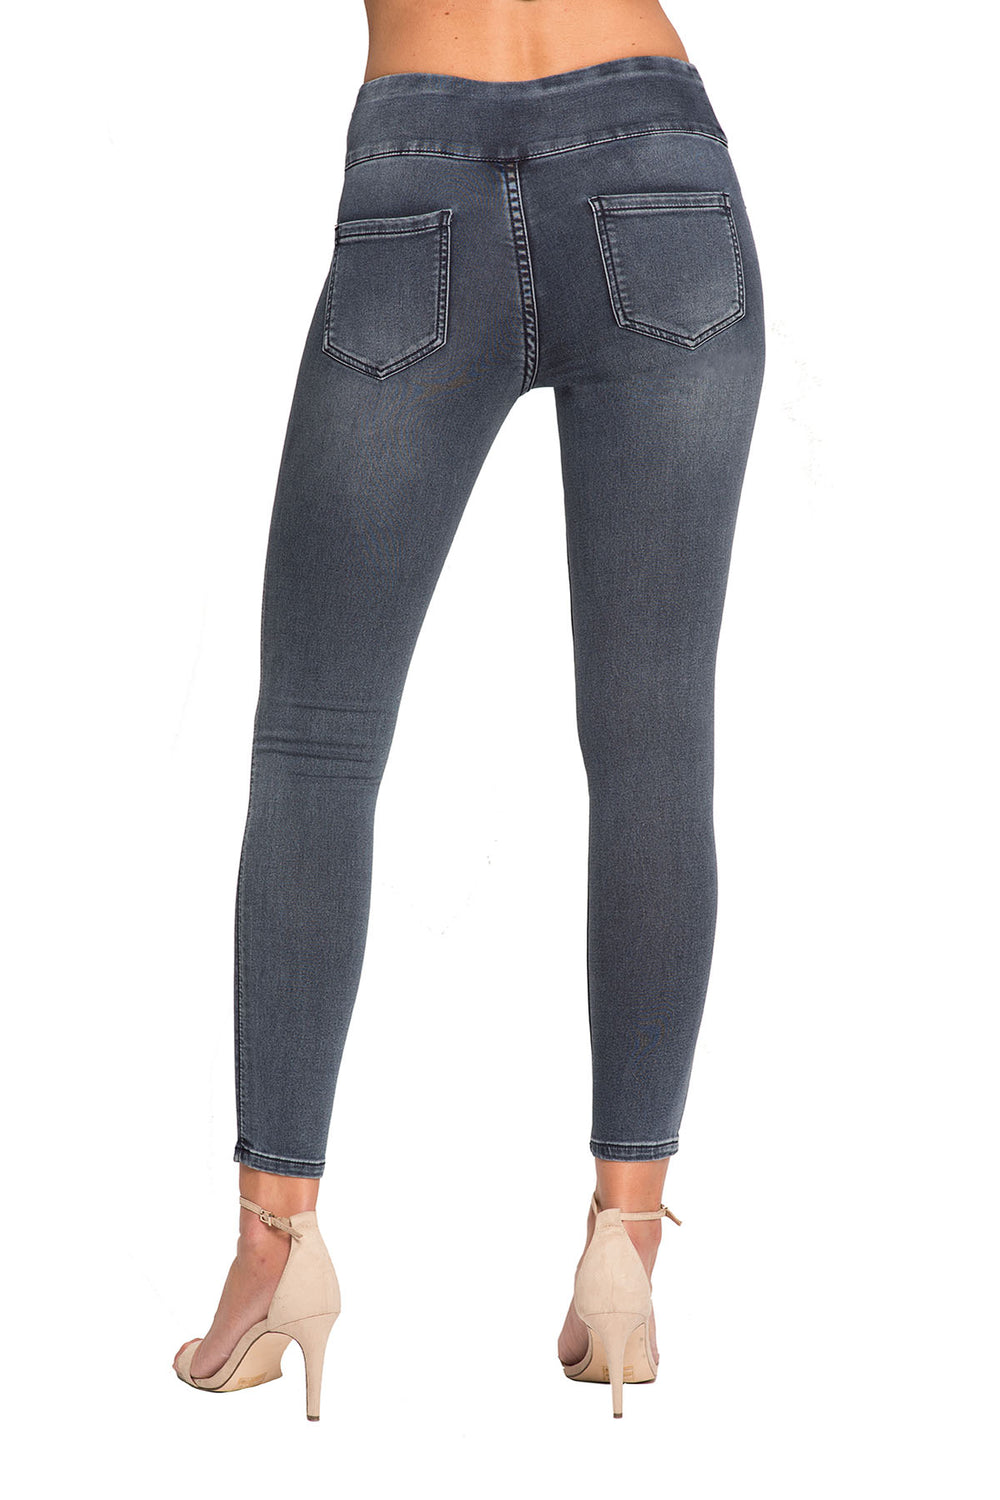 Jane Skinny Denim Jeans - Neutral Colors